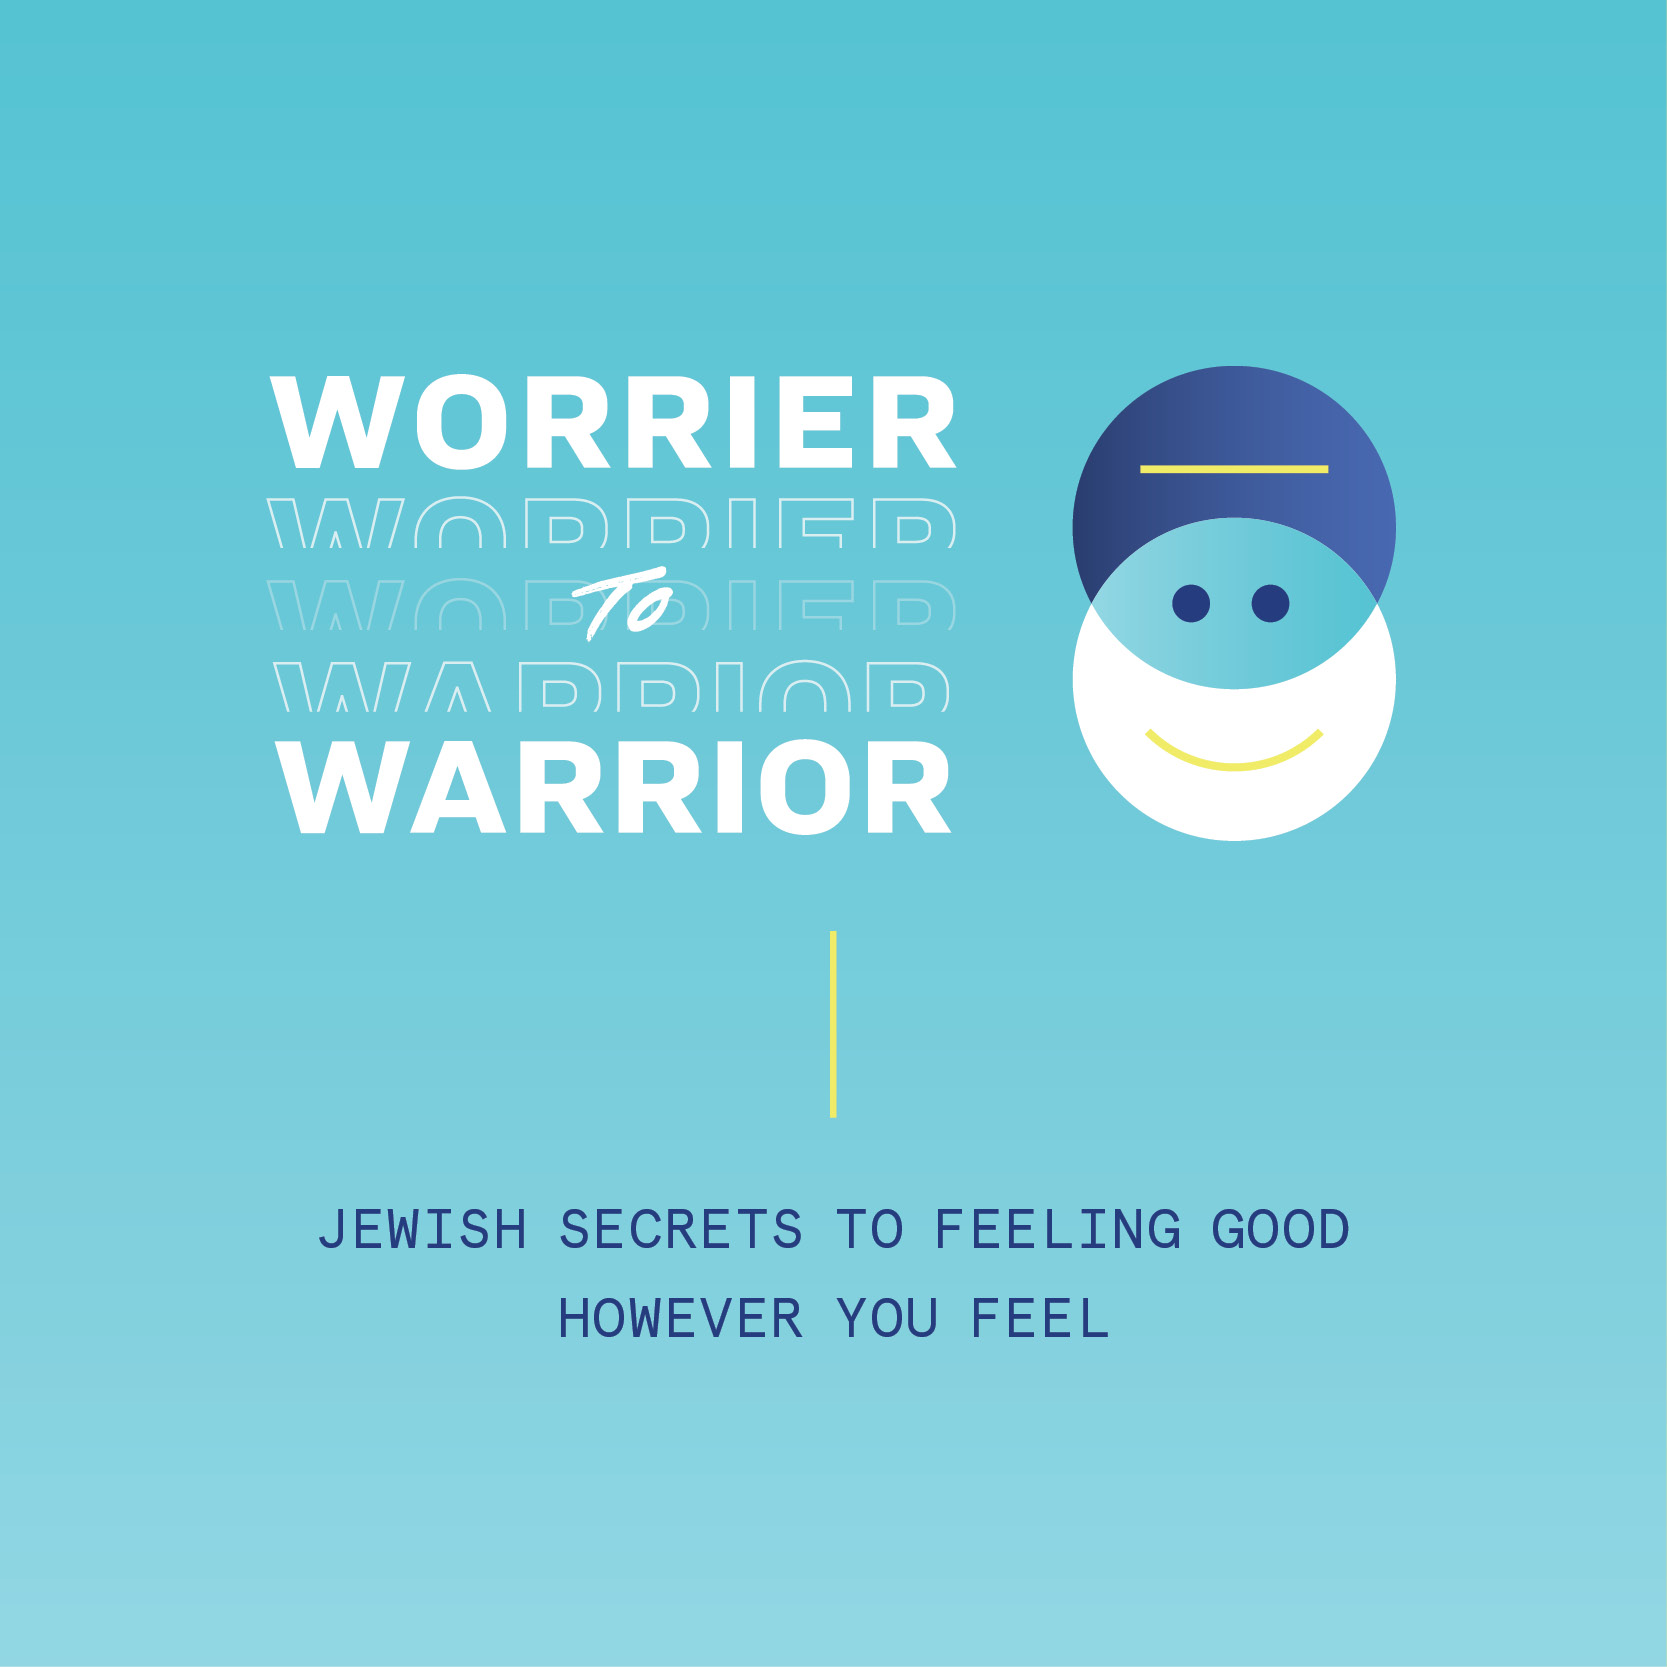 Worrier to Warrior: Jewish Secrets to Feeling Good However You Feel